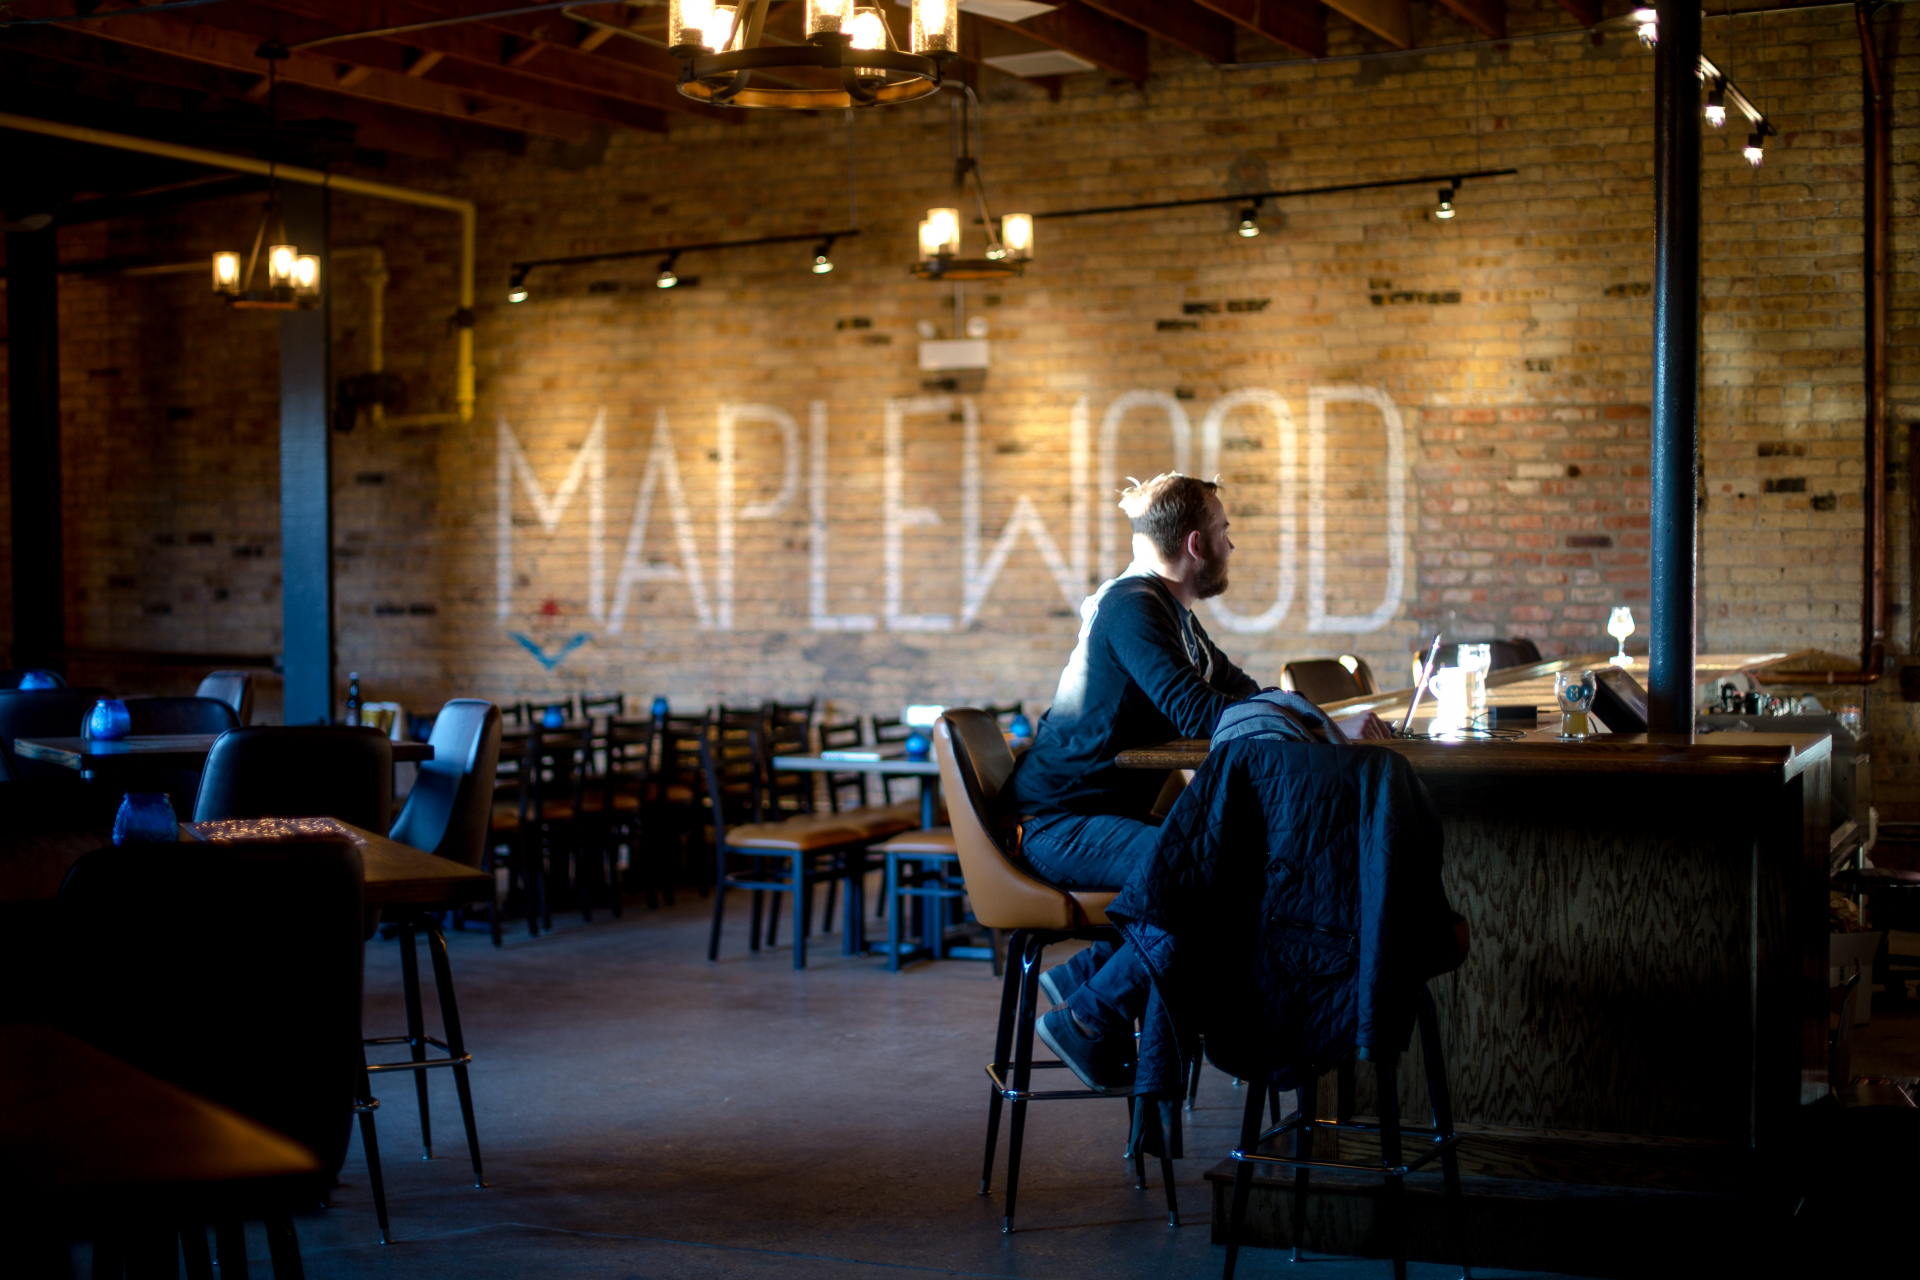 Maplewood Brewery & Distillery